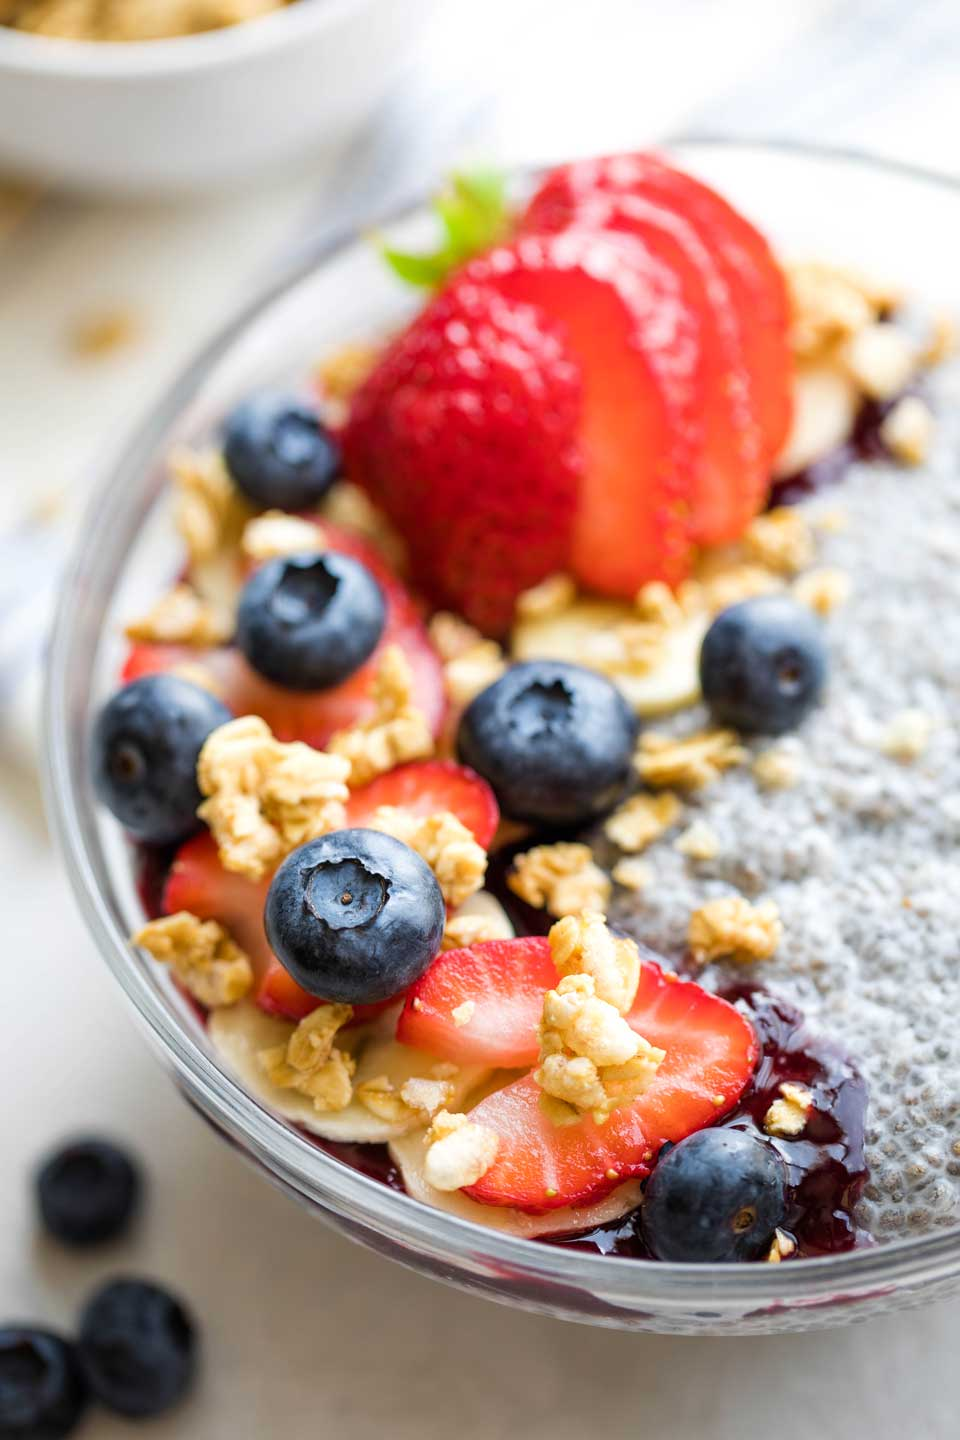 closeup photo of the toppings on a bowl of chia pudding - strawberries, blueberries, sliced bananas, jelly and granola